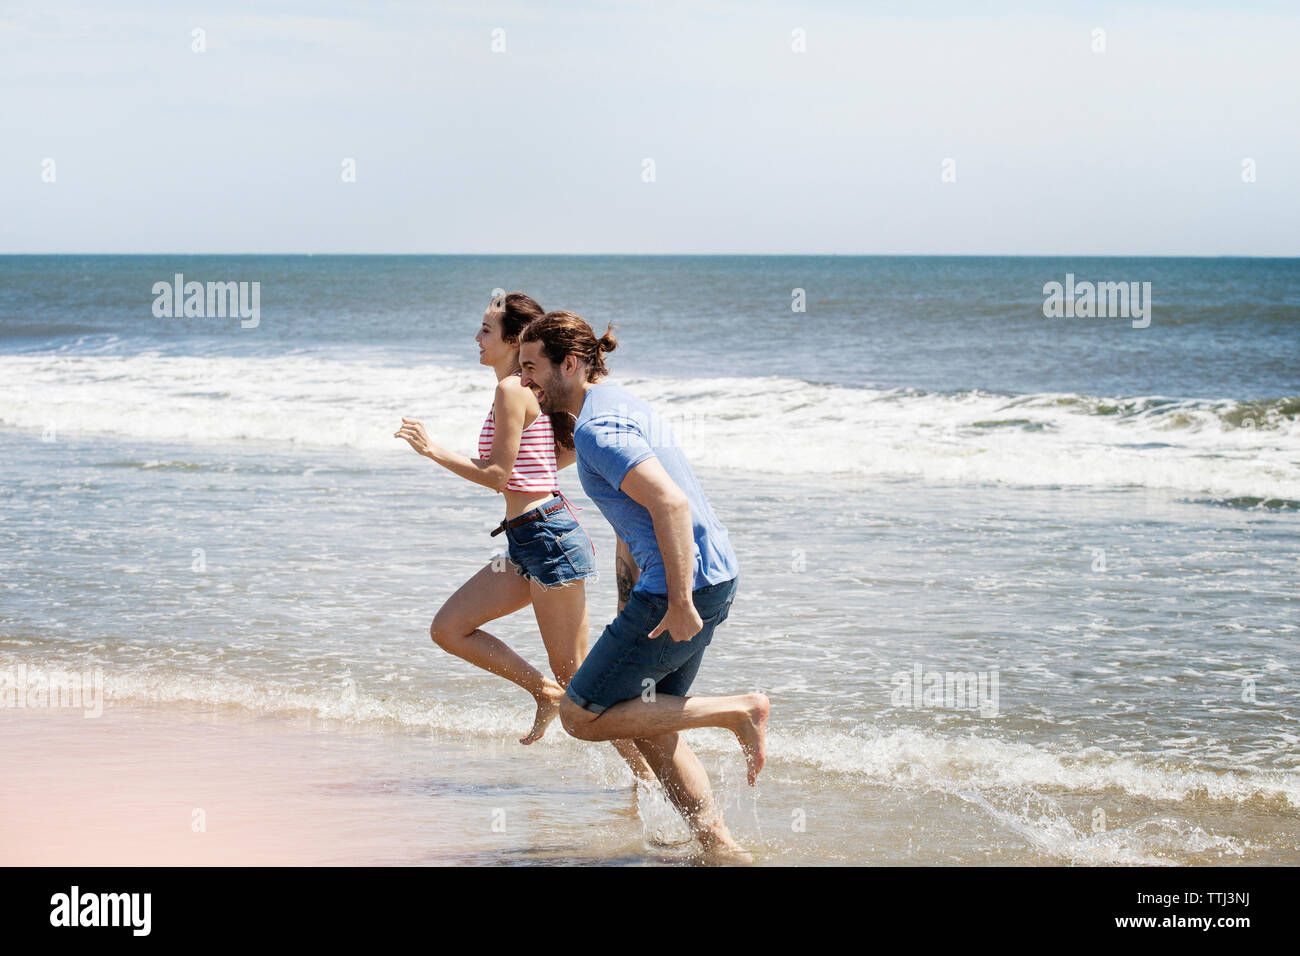 Side view of couple running on shore at beach during summer vacation - Stock Image